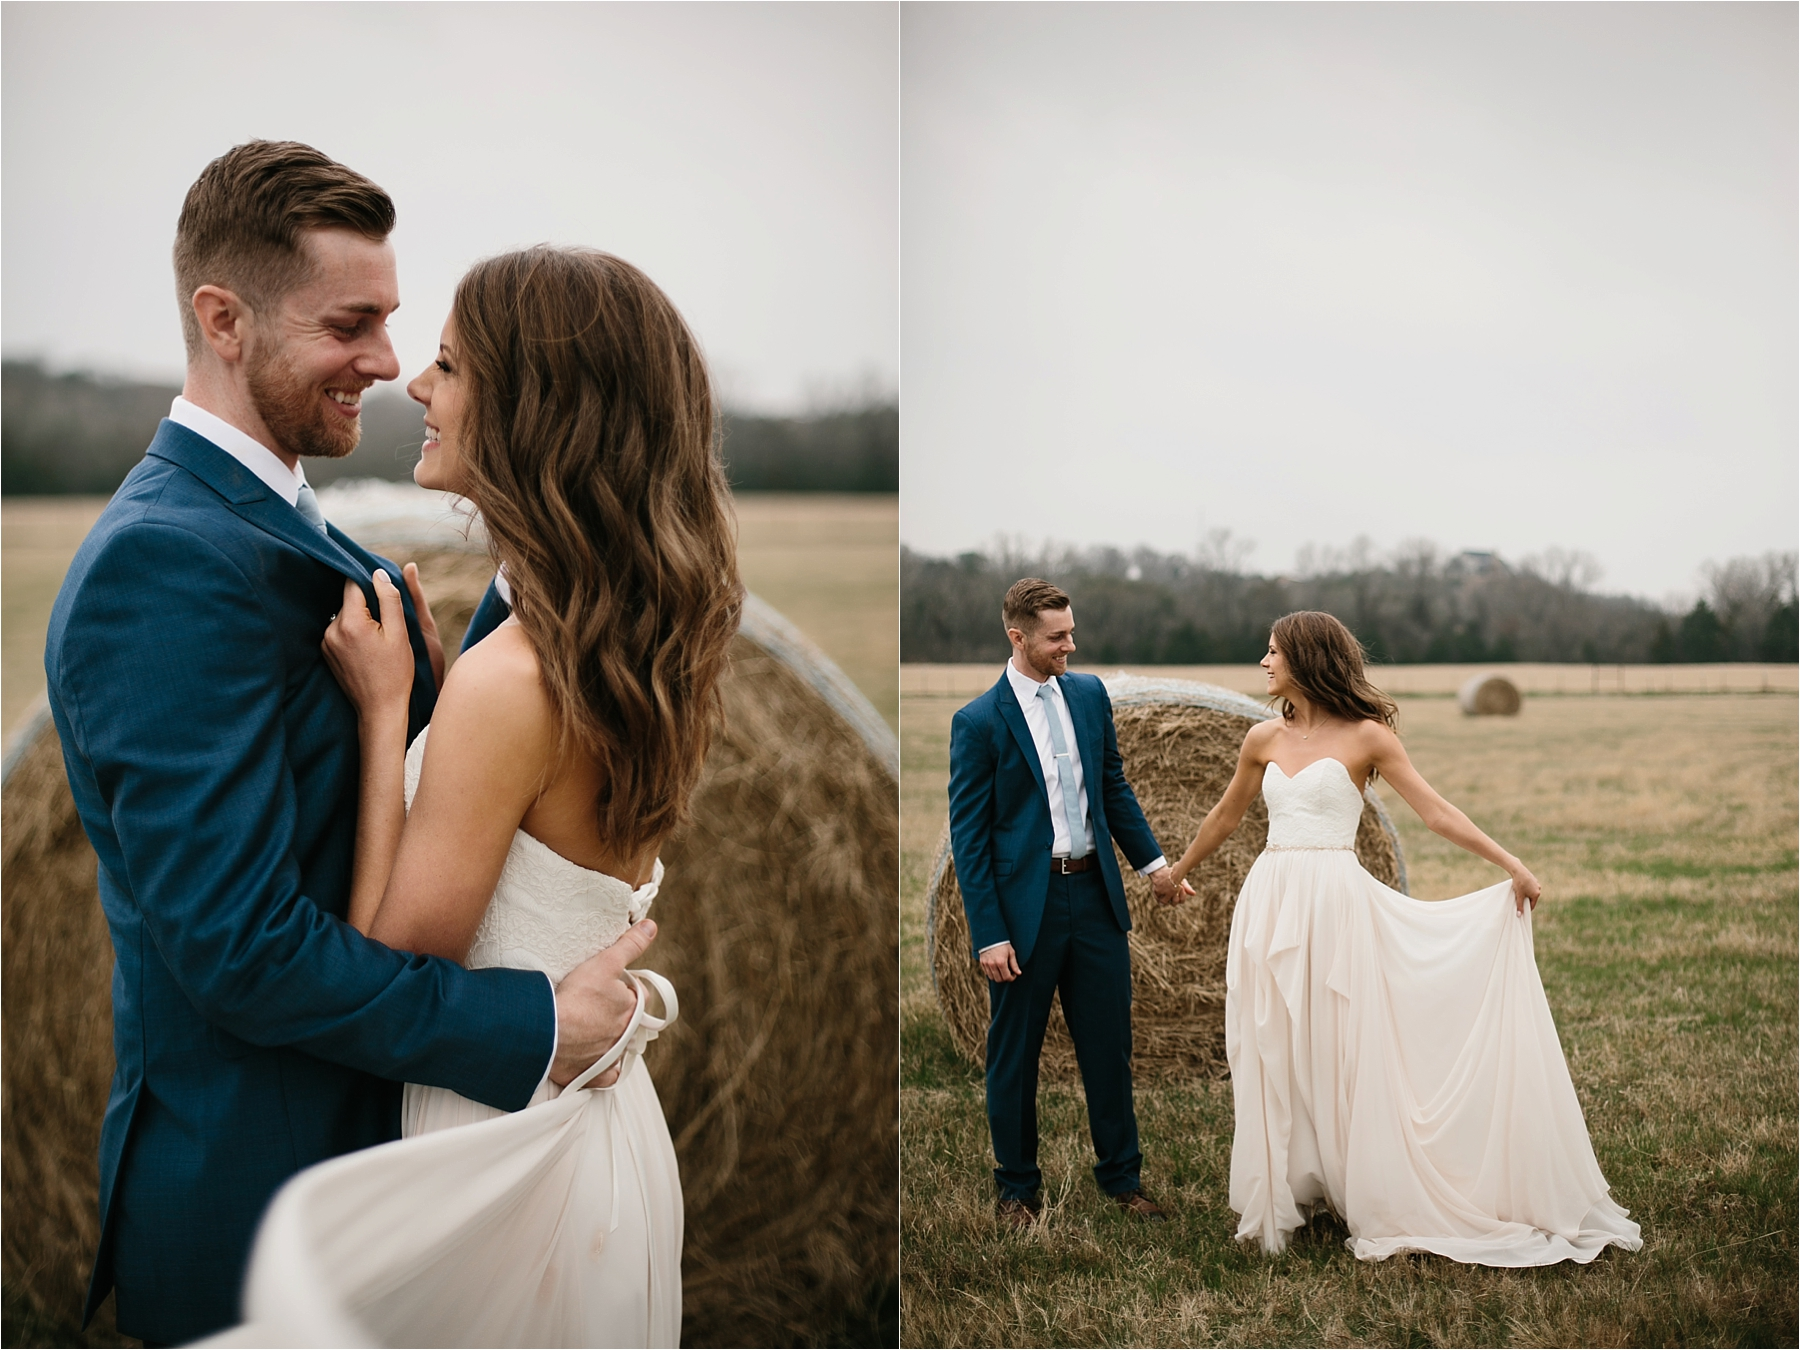 Lauren + Matt __ an intimate, emotional, blush pink, navy blue, and greenery toned wedding accents at the Brooks at Weatherford by North Texas Wedding Photographer Rachel Meagan Photography050